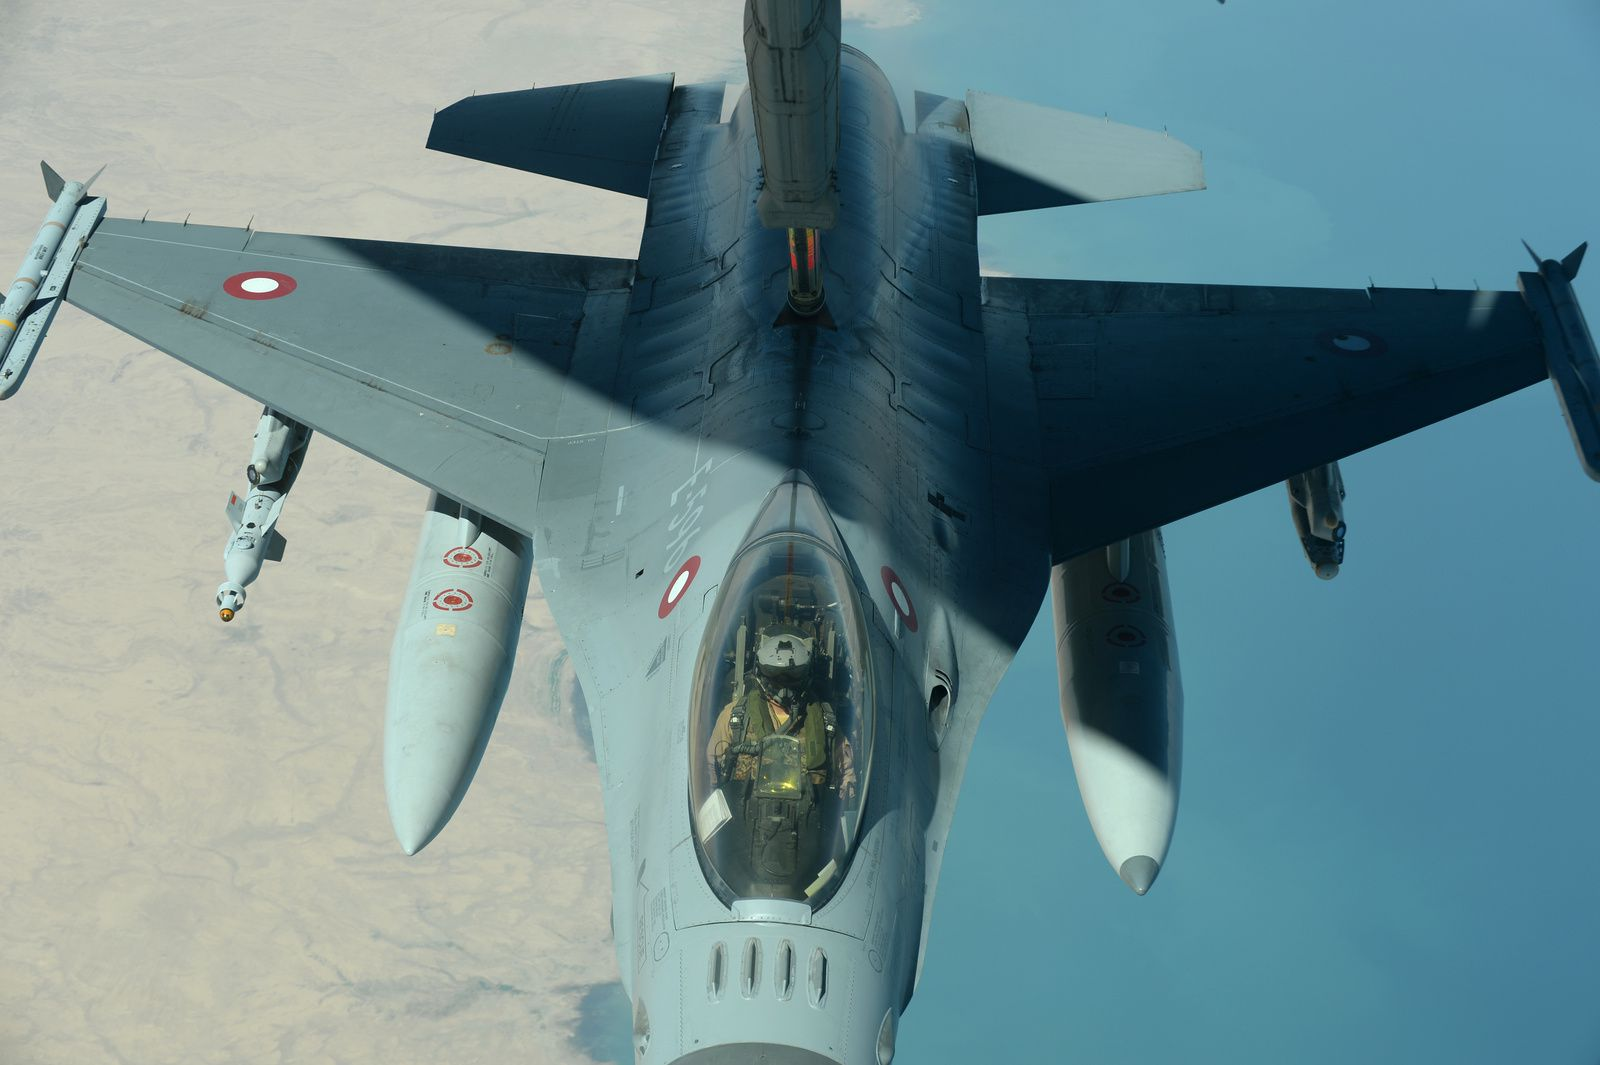 © USAF - Un F-16AM de la Flyvevåbnet lors d'une mission de l'opération Inherent Resolve.